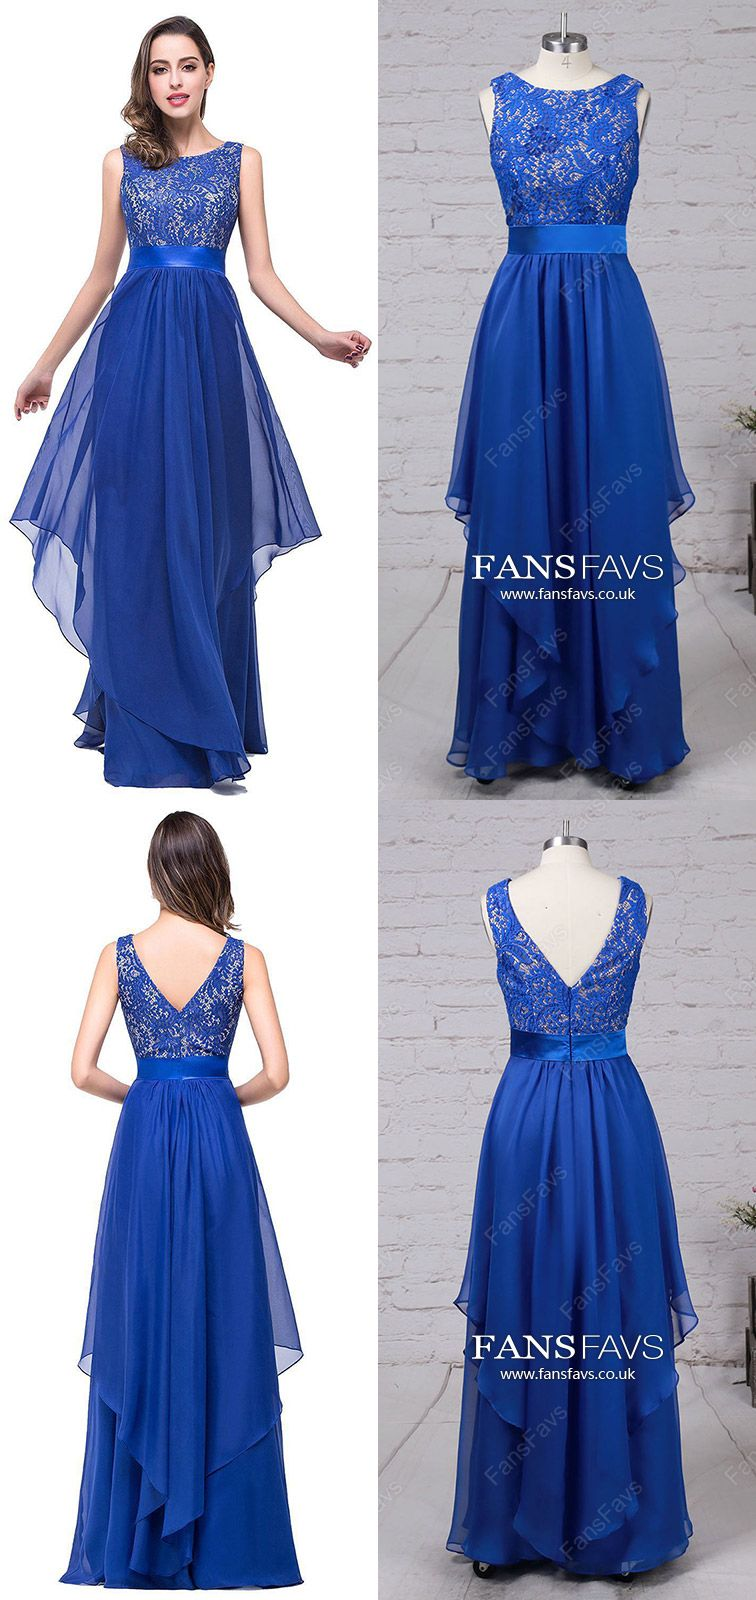 Royal blue prom dresses longaline prom dresses lacemodest prom